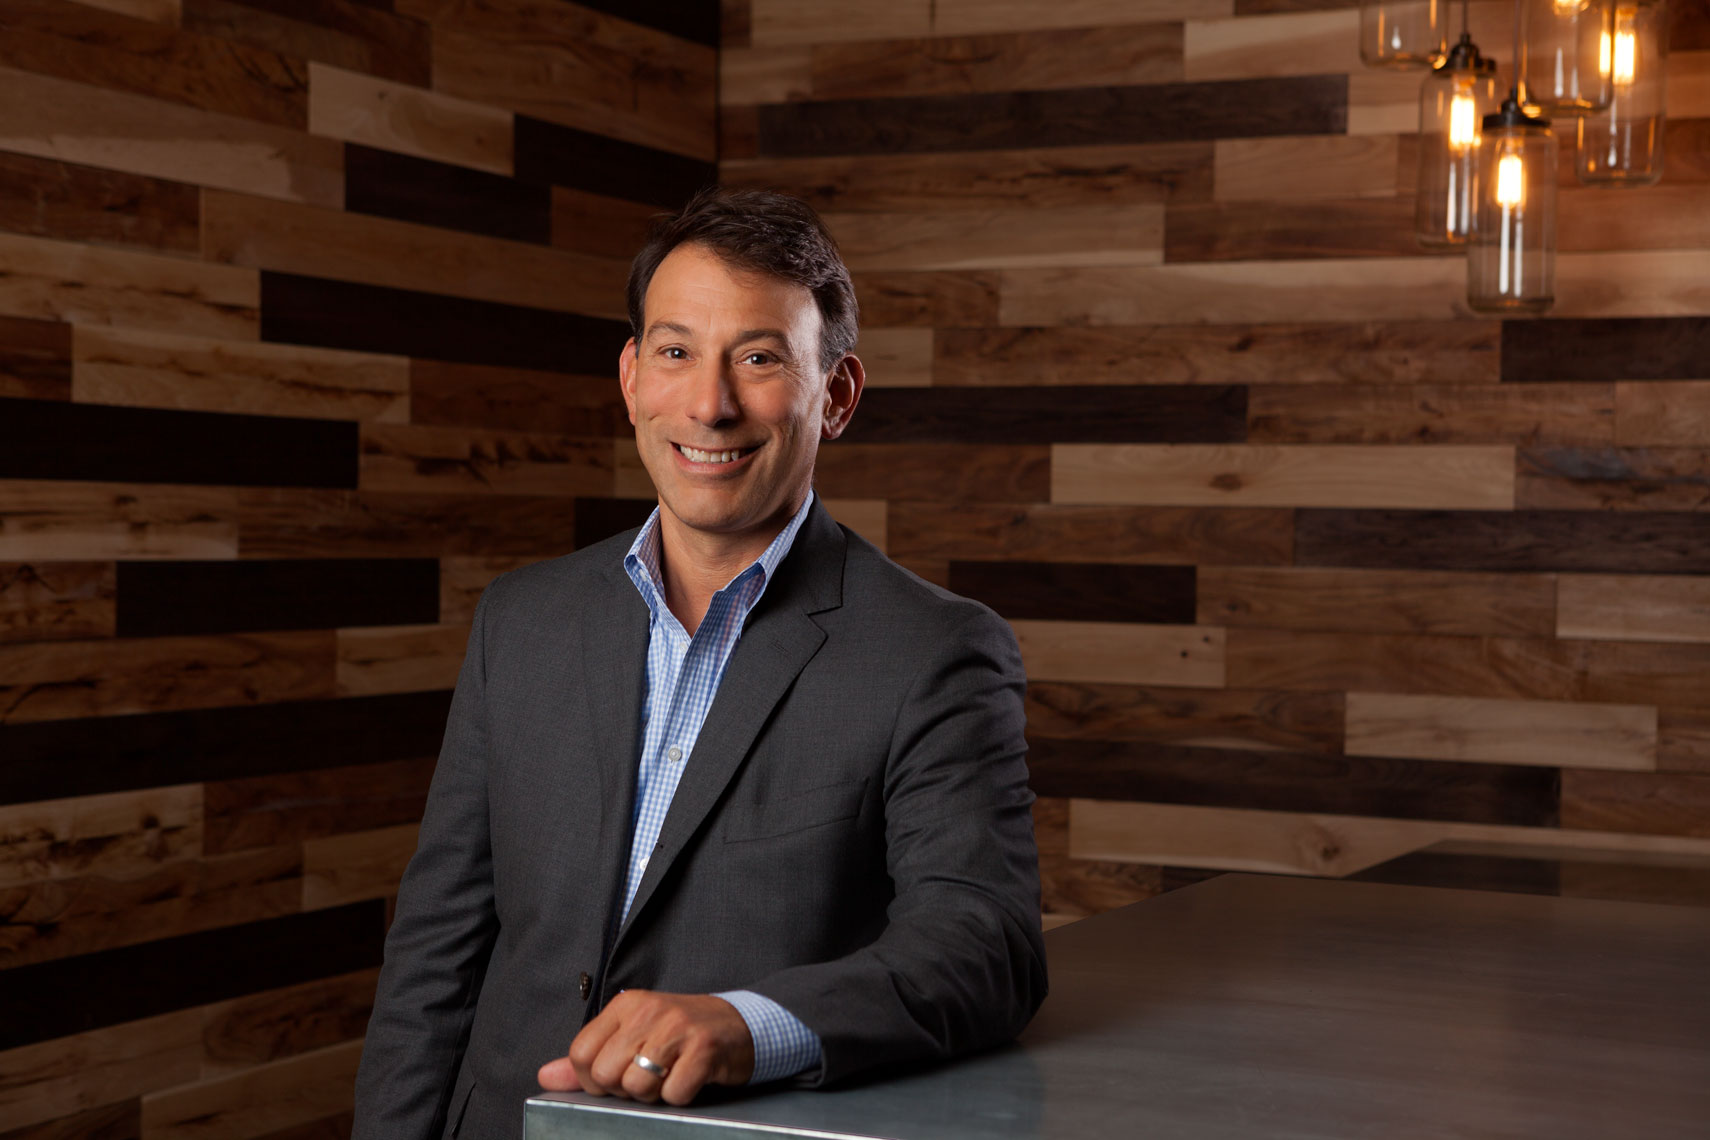 Kimpton Group CEO Mike DeFrino